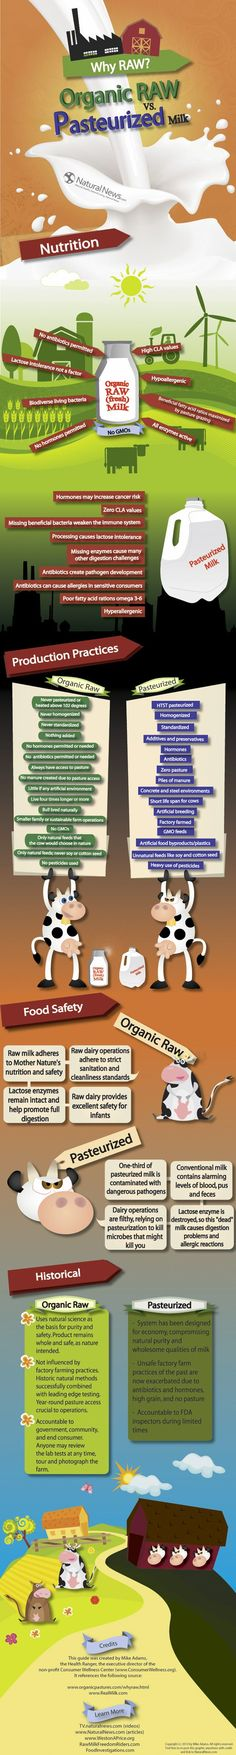 For those who are lactose intolerant - there is raw dairy -- looking into this now! Health Ranger releases raw milk infographic comparing fresh raw dairy to pasteurized homogenized dead milk